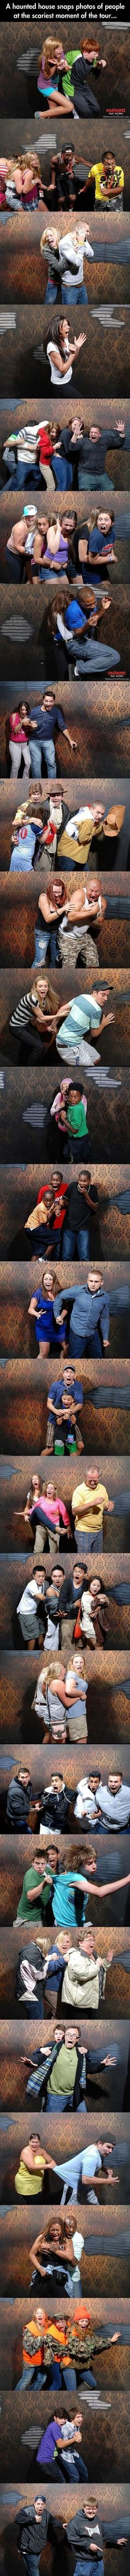 People got photographed at the scariest part of a haunted house